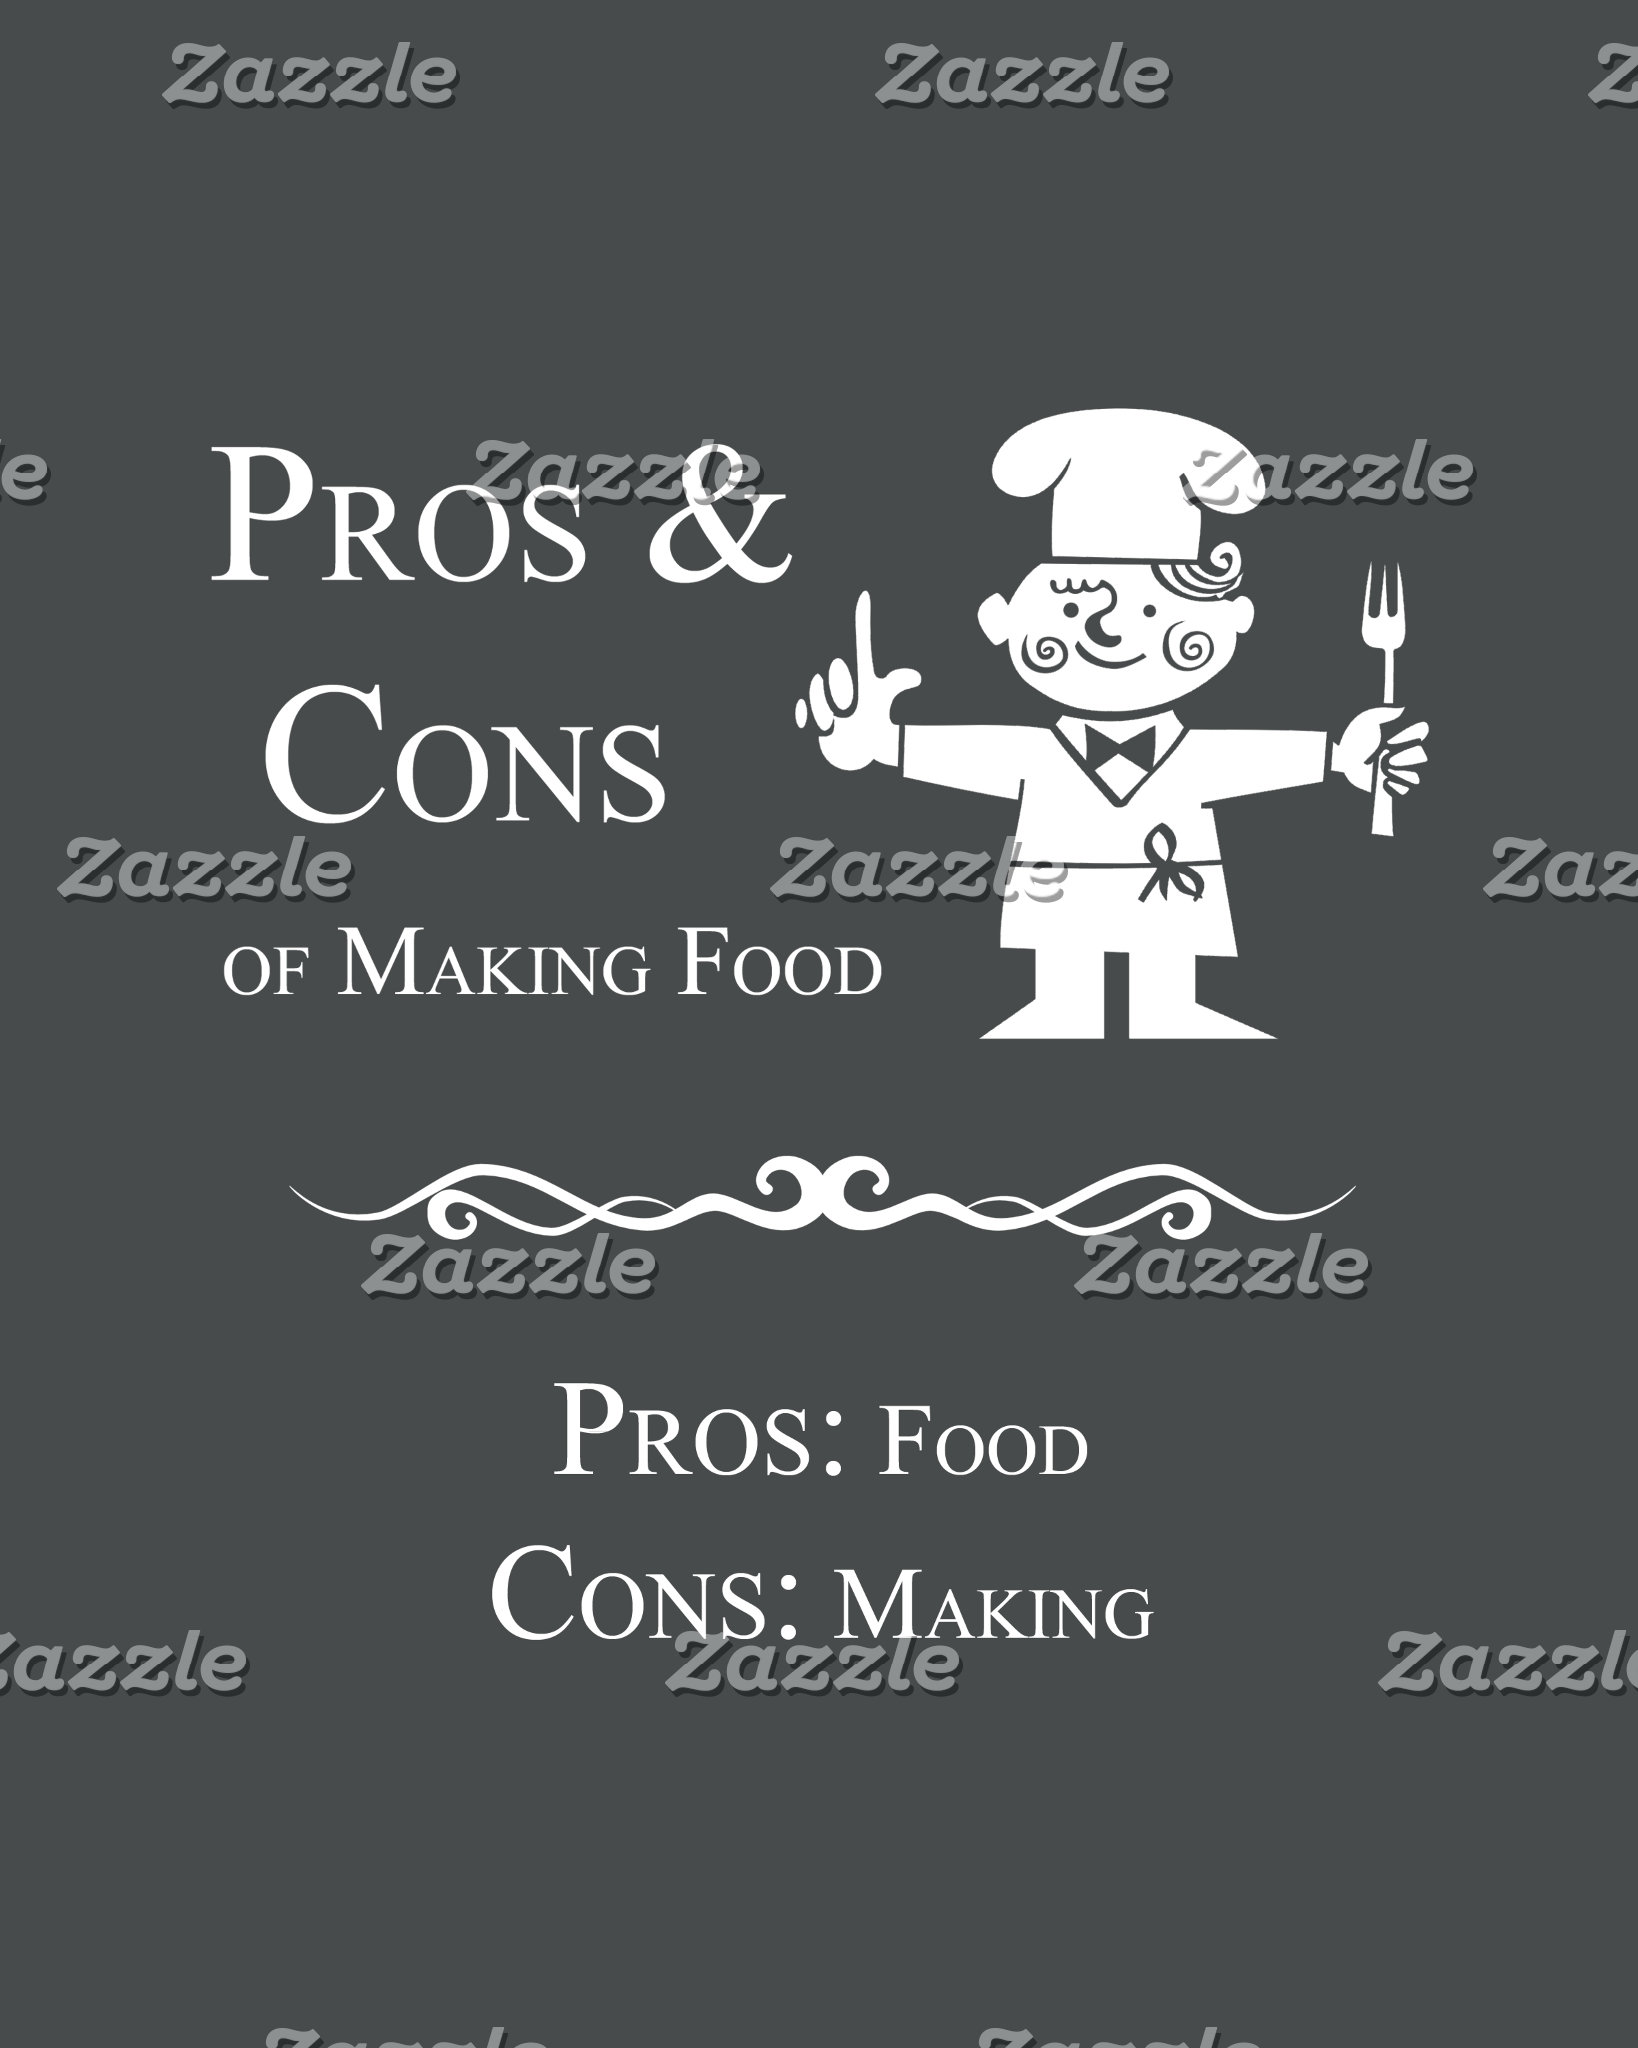 Pros & Cons of Making Food